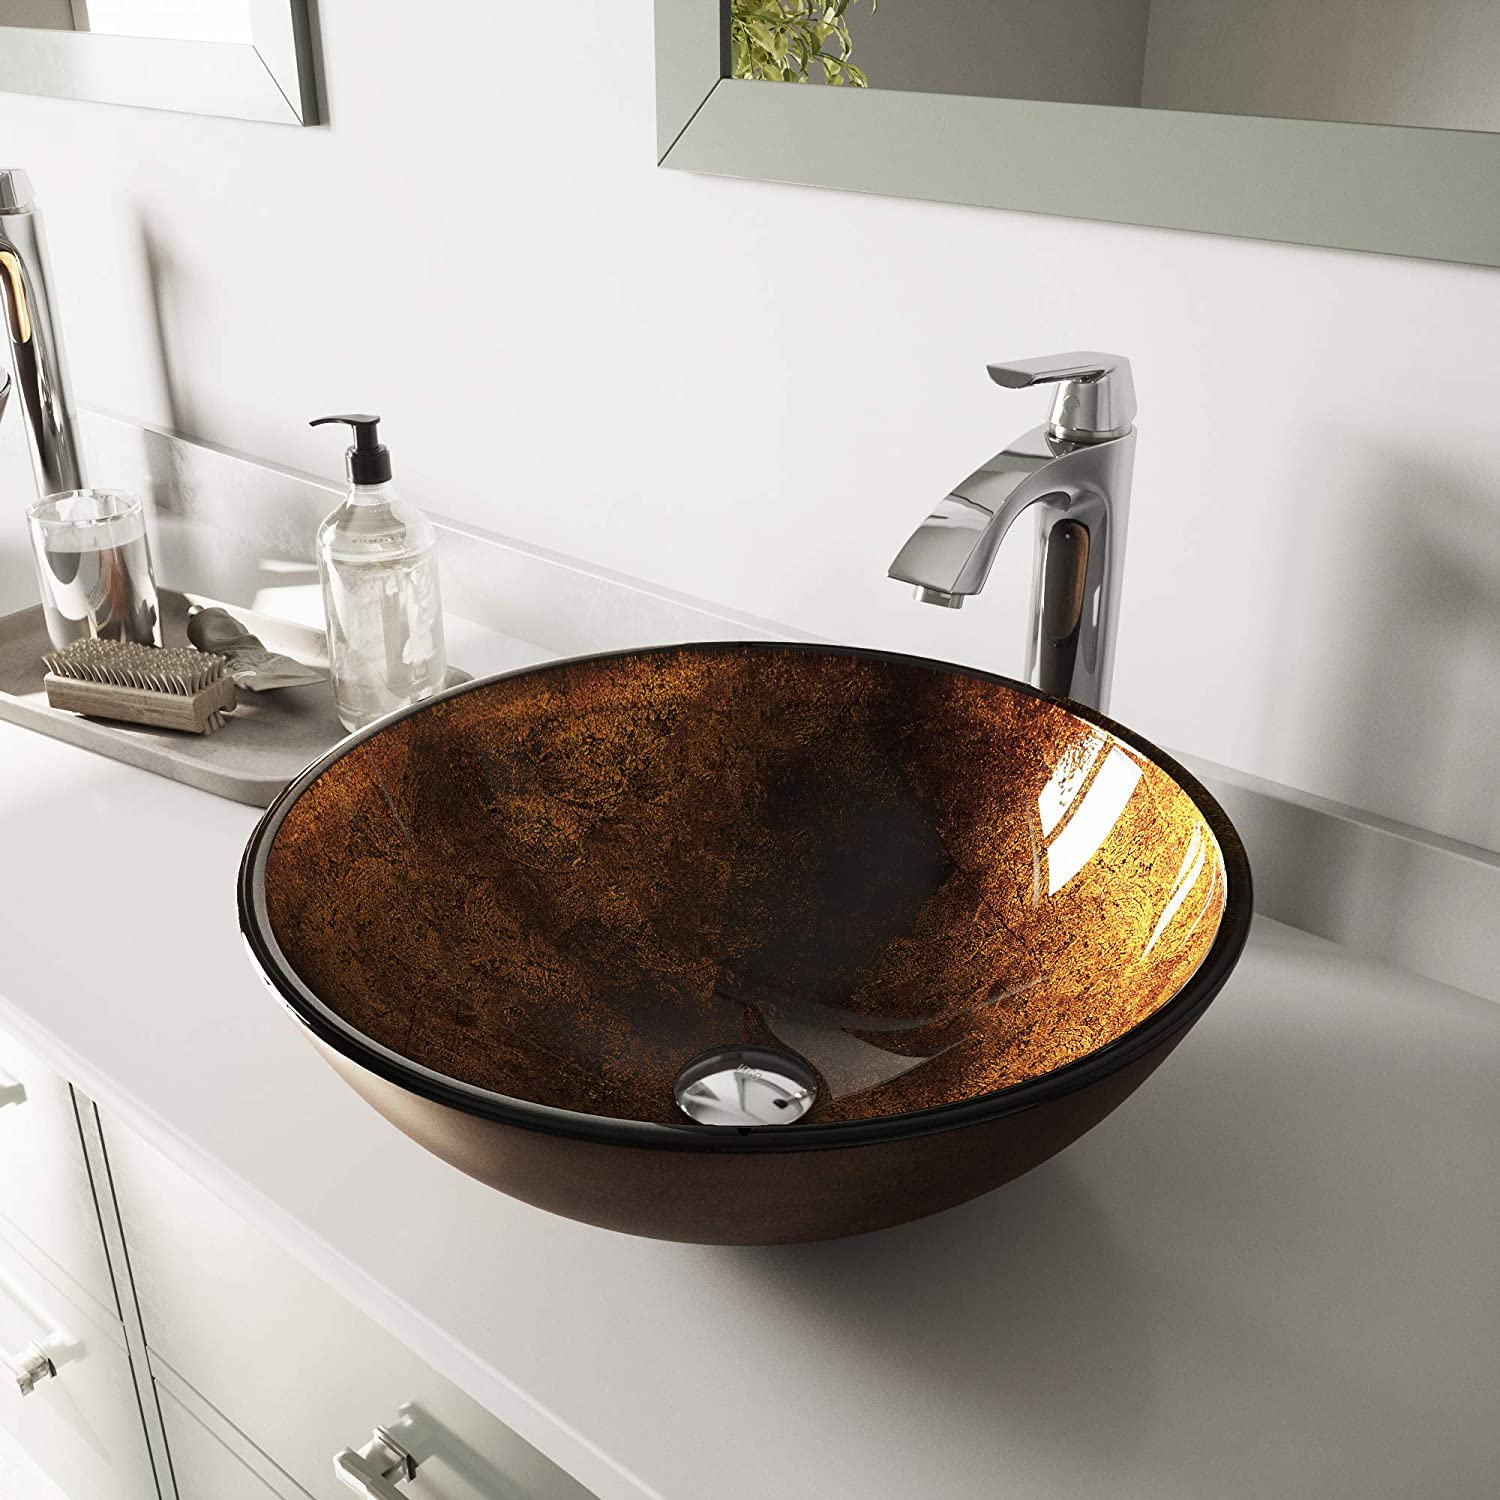 VIGO Russet Glass Vessel Bathroom Sink and Linus Vessel Faucet with Pop Up, Chrome